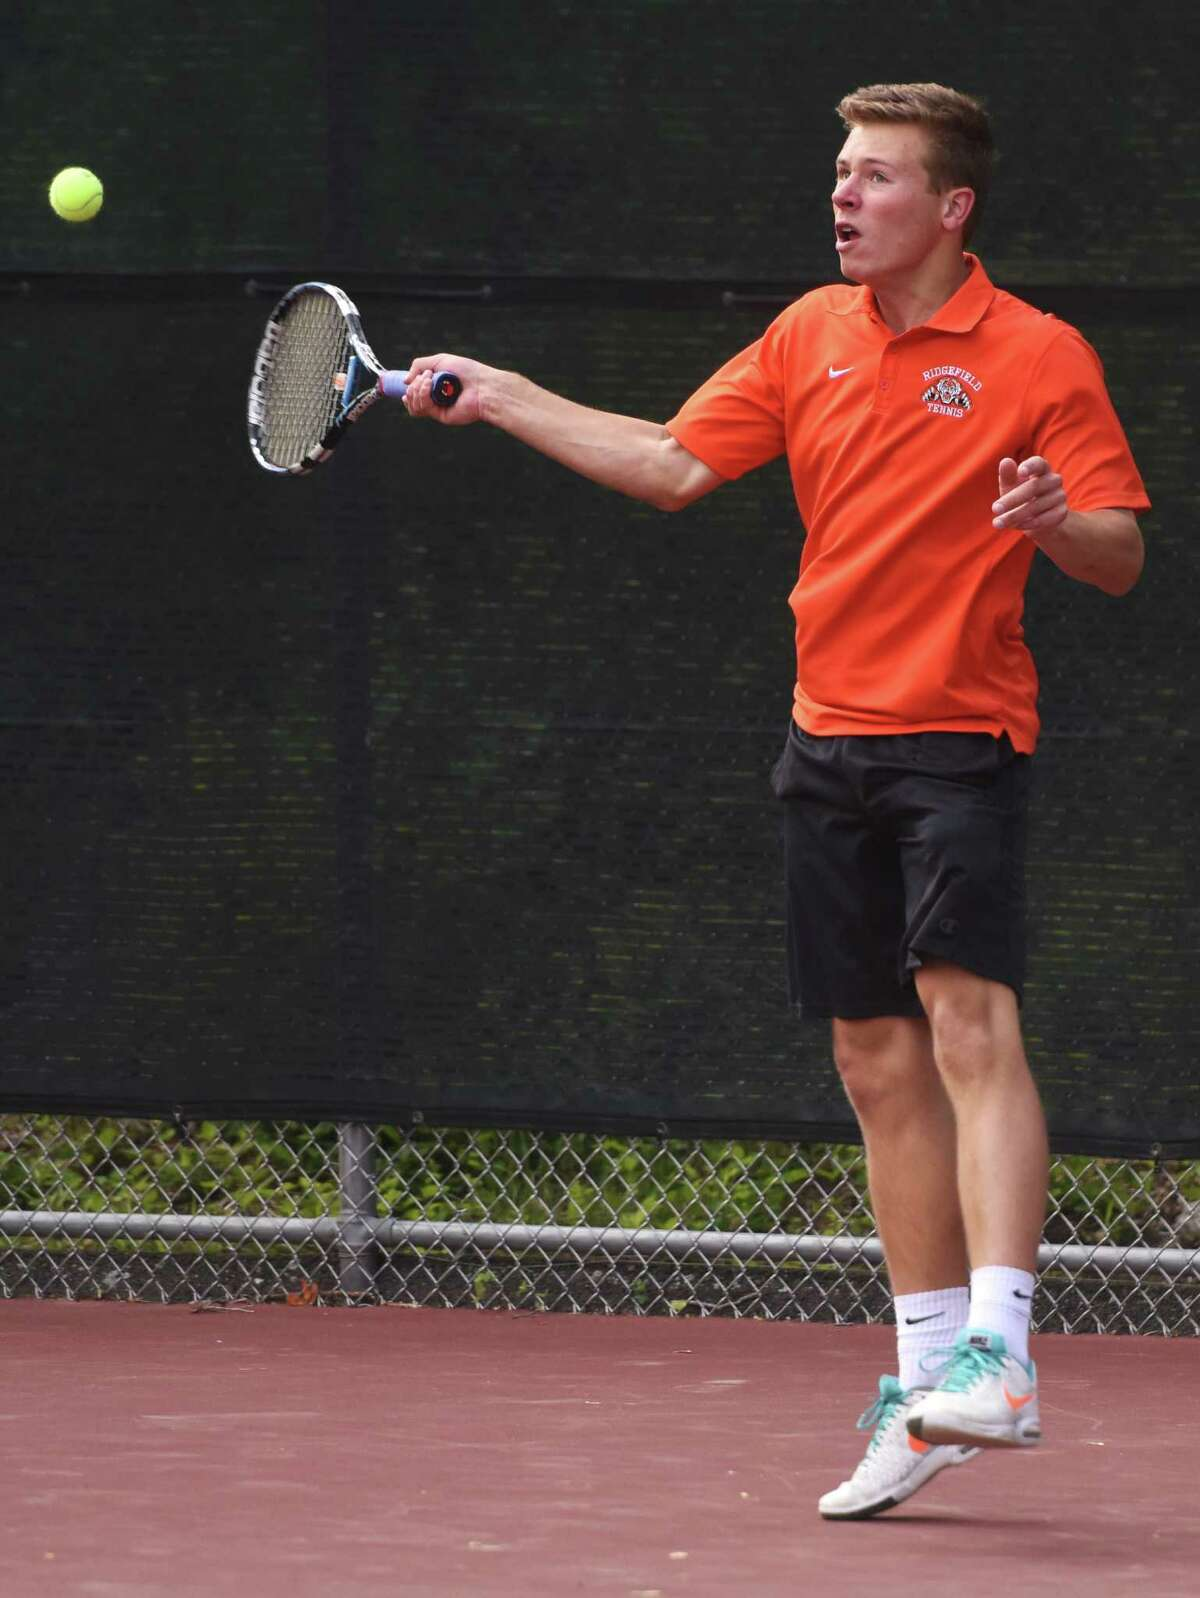 Photos from the high school boys tennis match between Greenwich and Ridgefield at Greenwich High School in Greenwich, Conn. Thursday, May 21, 2015.